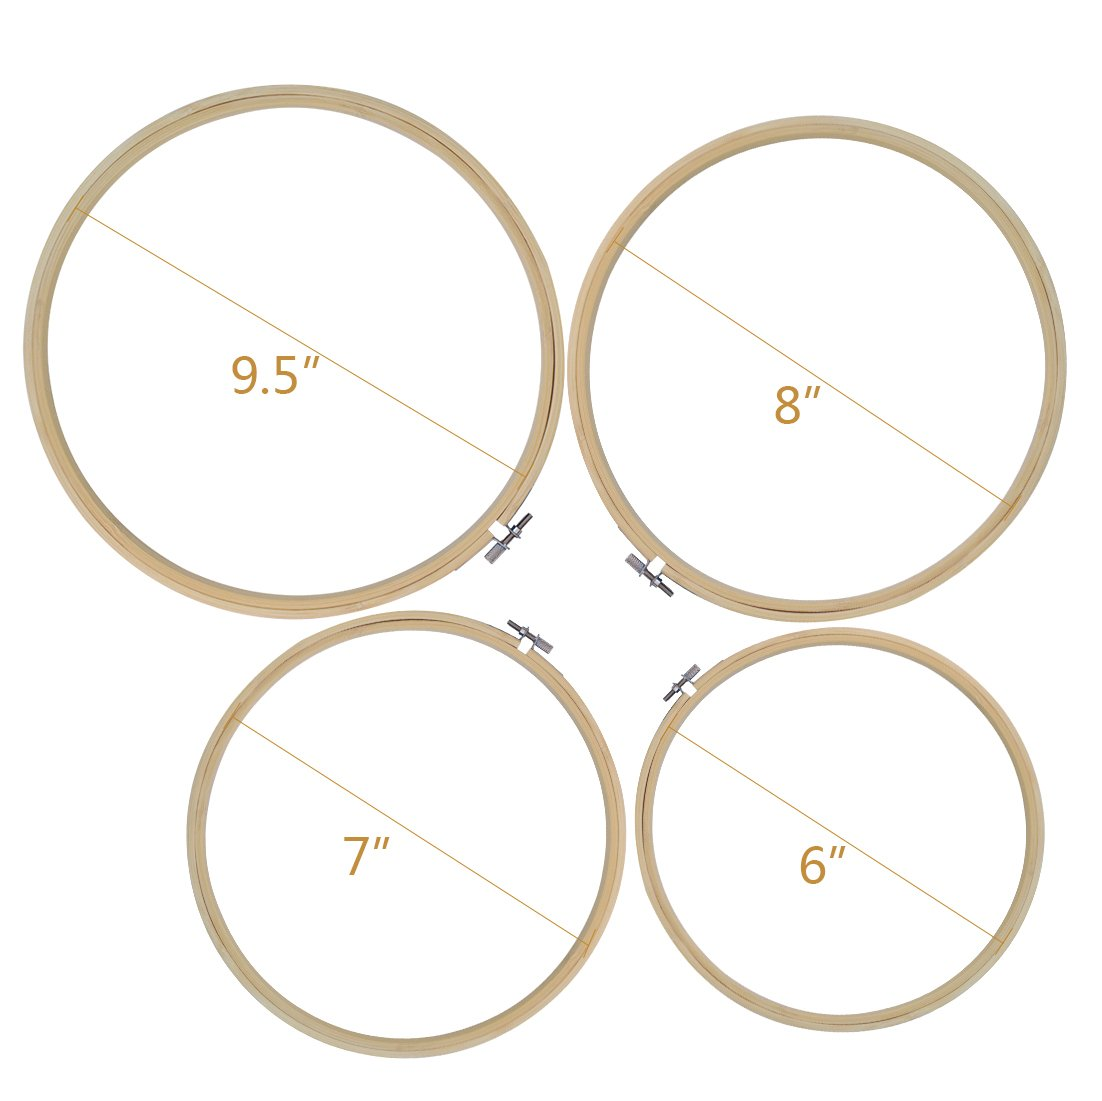 "7/"" 8/"" 9.5/"",Embroidery Starter Kit Hoops Cross Stitch Hoop Embroidery Circle Set 4 PCS 4 Sizes Embroidery Cross Stitch Hoop Ring in Inner Diameter of 6/"" Pistha Embroidery Bamboo Circle"